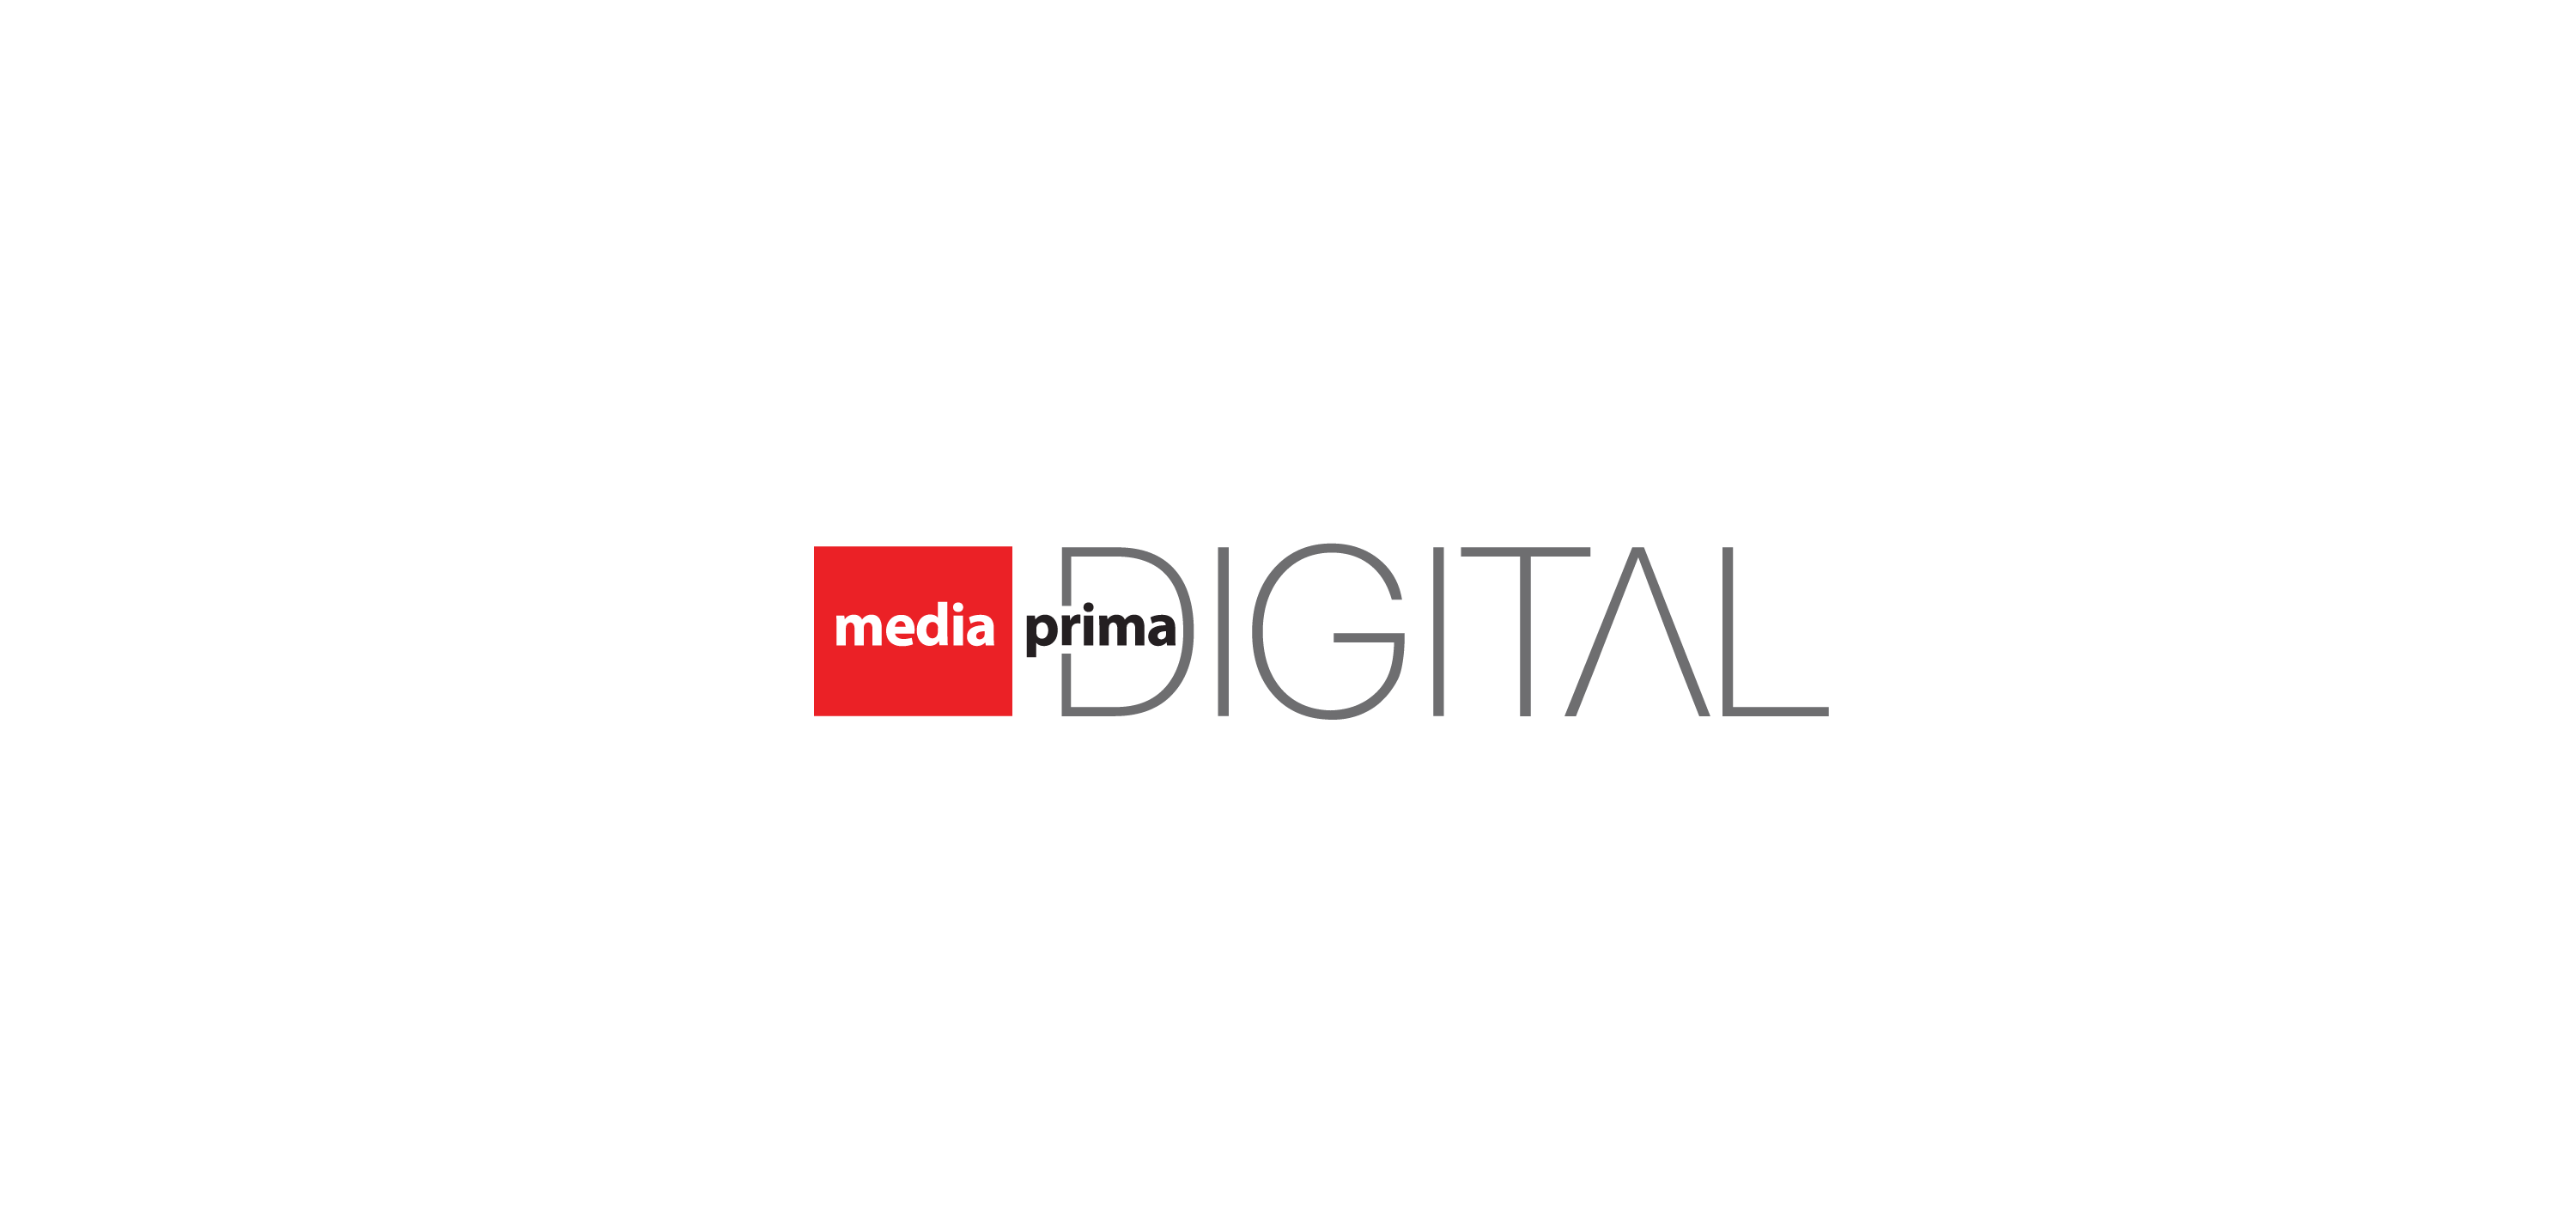 Media Prima Digital Logo